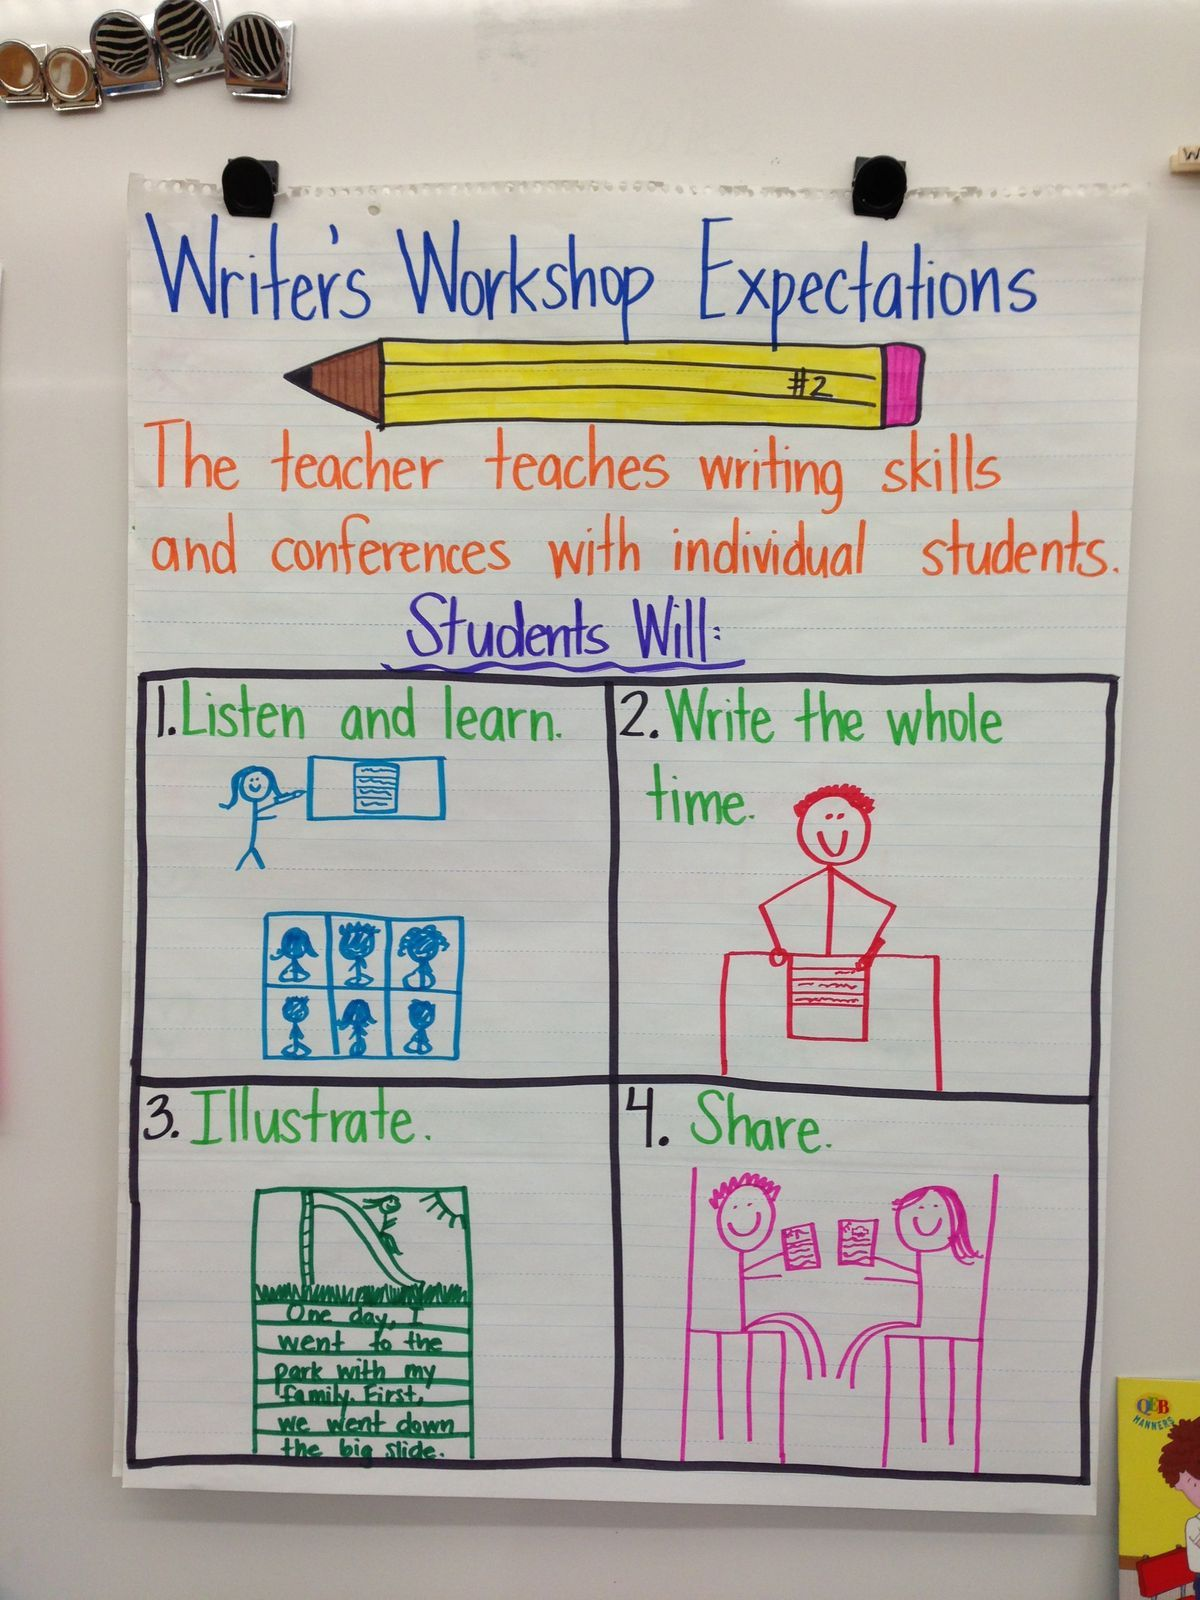 073bb8edee6cd90ef4f6ae626f6f7675 Jpg 1 200 1 600 Pixels Teaching Writing Writing Lessons First Grade Writing Reading workshop in first grade